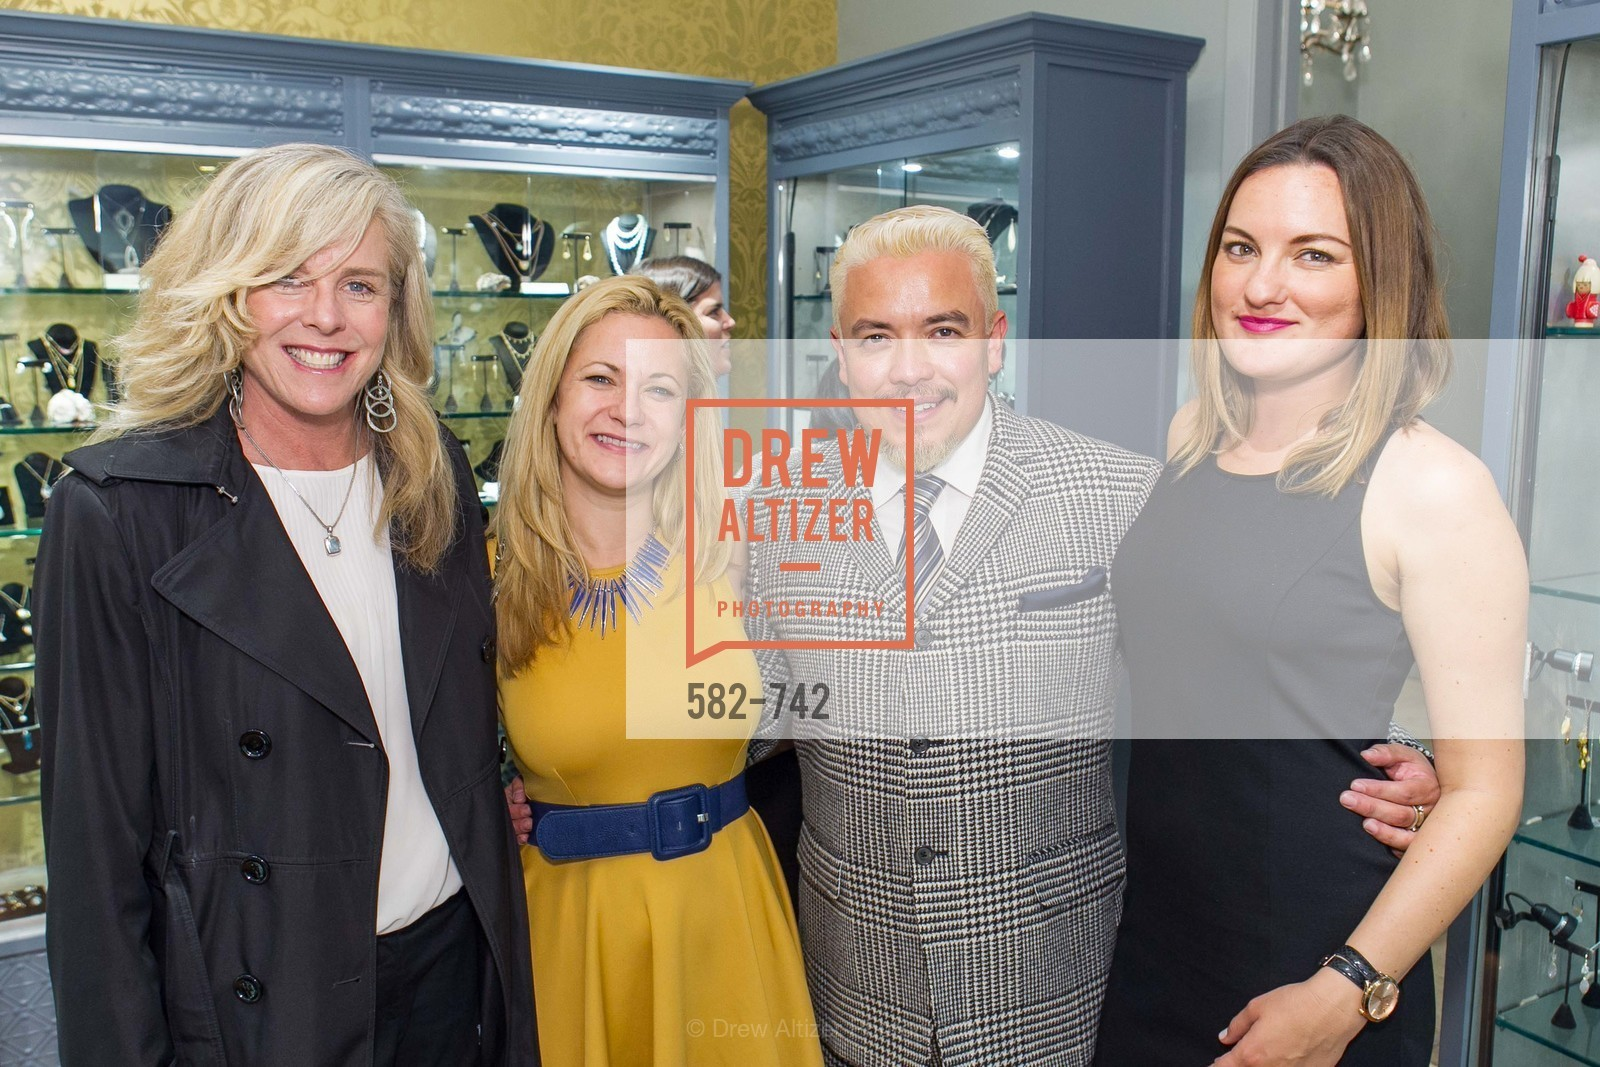 Denise Lamott, Danielle Shareshian, Victor Vargas, Rena Ramirez, LUXETIGERS & GALLERY OF JEWELS Benefit for Dress for Success, US, May 20th, 2015,Drew Altizer, Drew Altizer Photography, full-service agency, private events, San Francisco photographer, photographer california